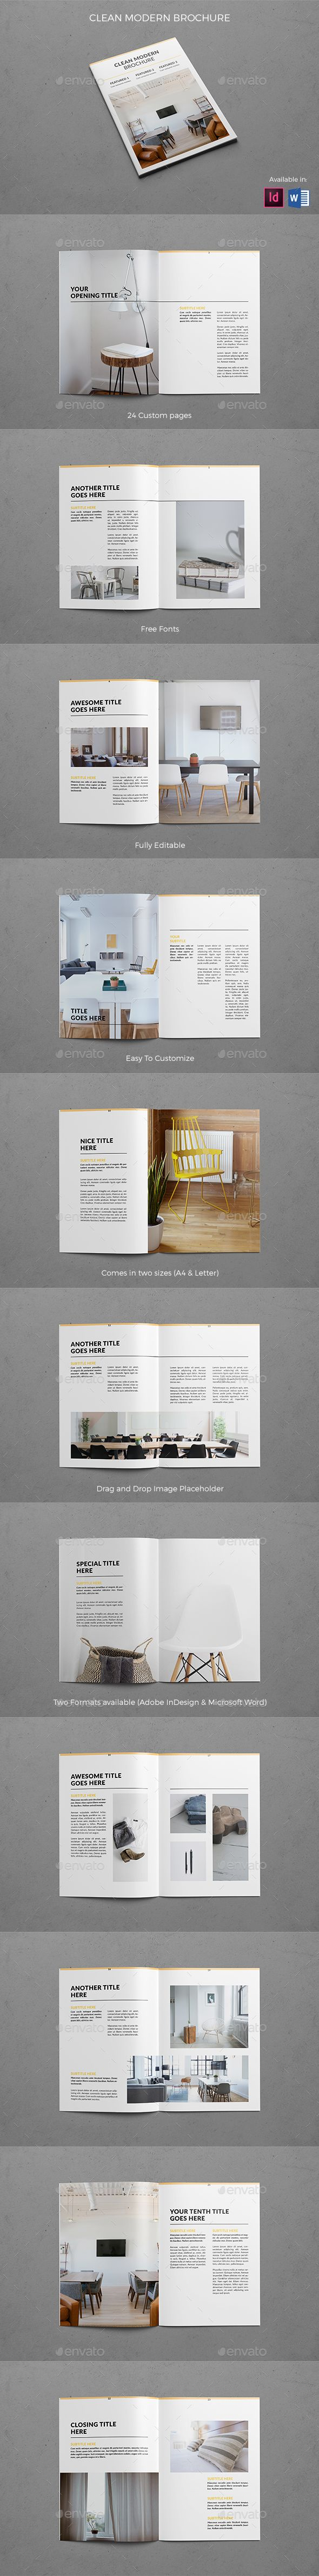 Clean Modern Brochure  Brochure Template Brochures And Template